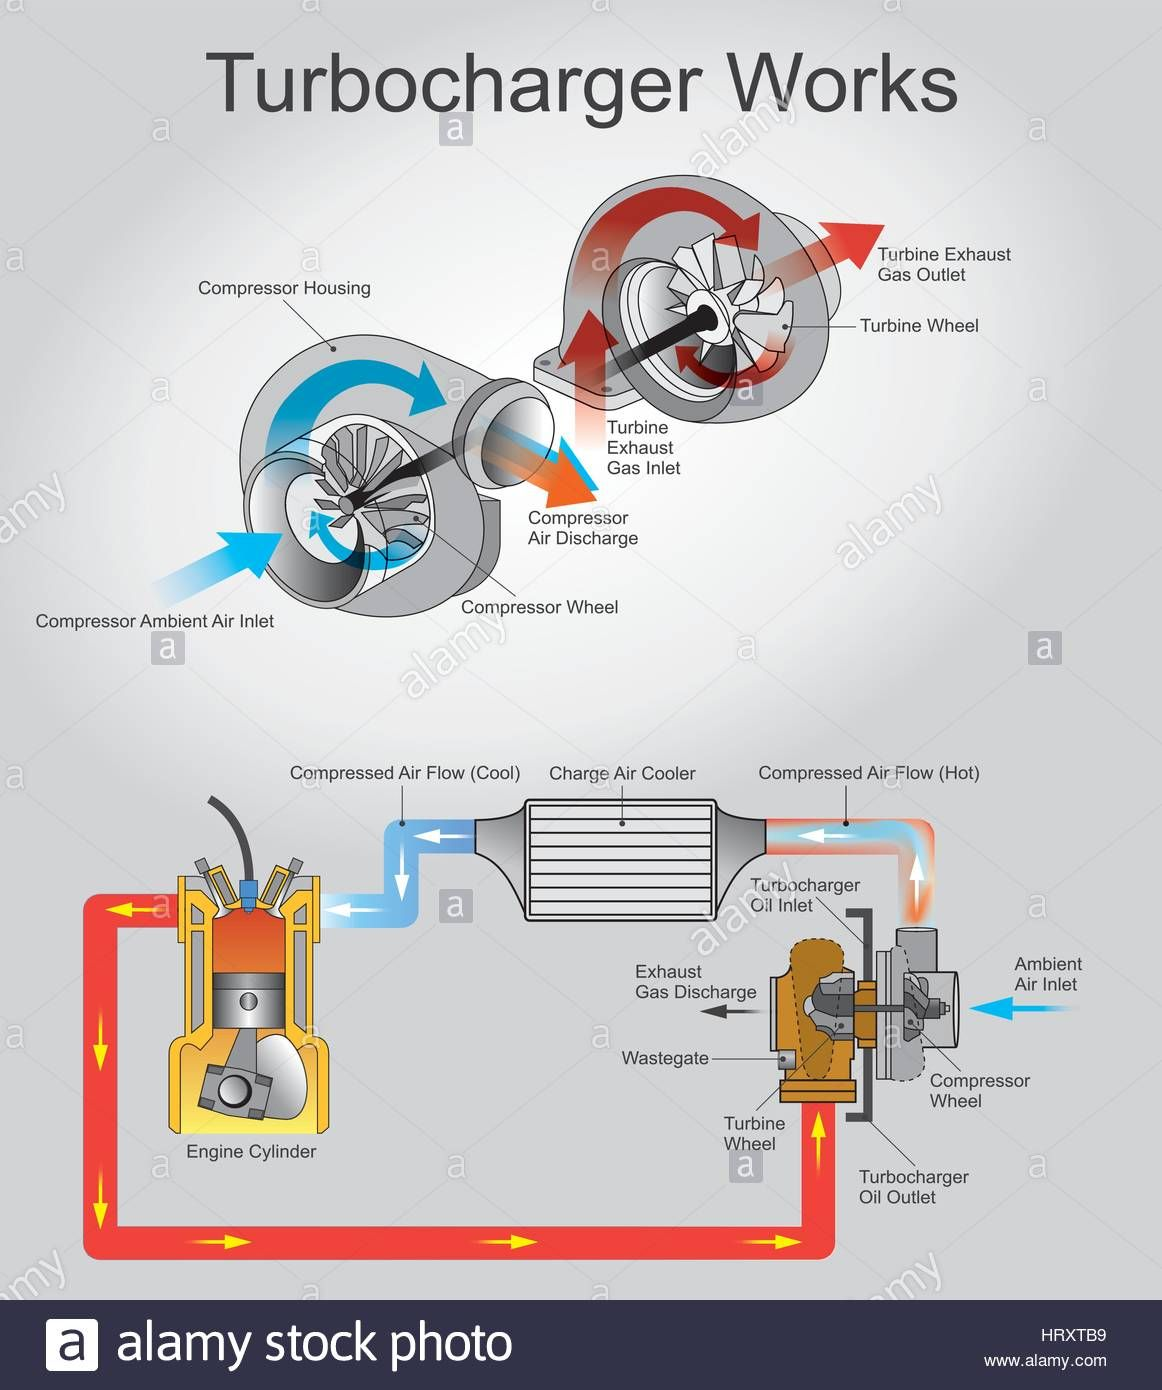 Download This Stock Vector A Turbocharger Or Turbo Is Turbine Jetenginediagram Image Jet Engine Diagram Driven Forced Induction Device That Increases An Internal Combustion Engines Efficiency